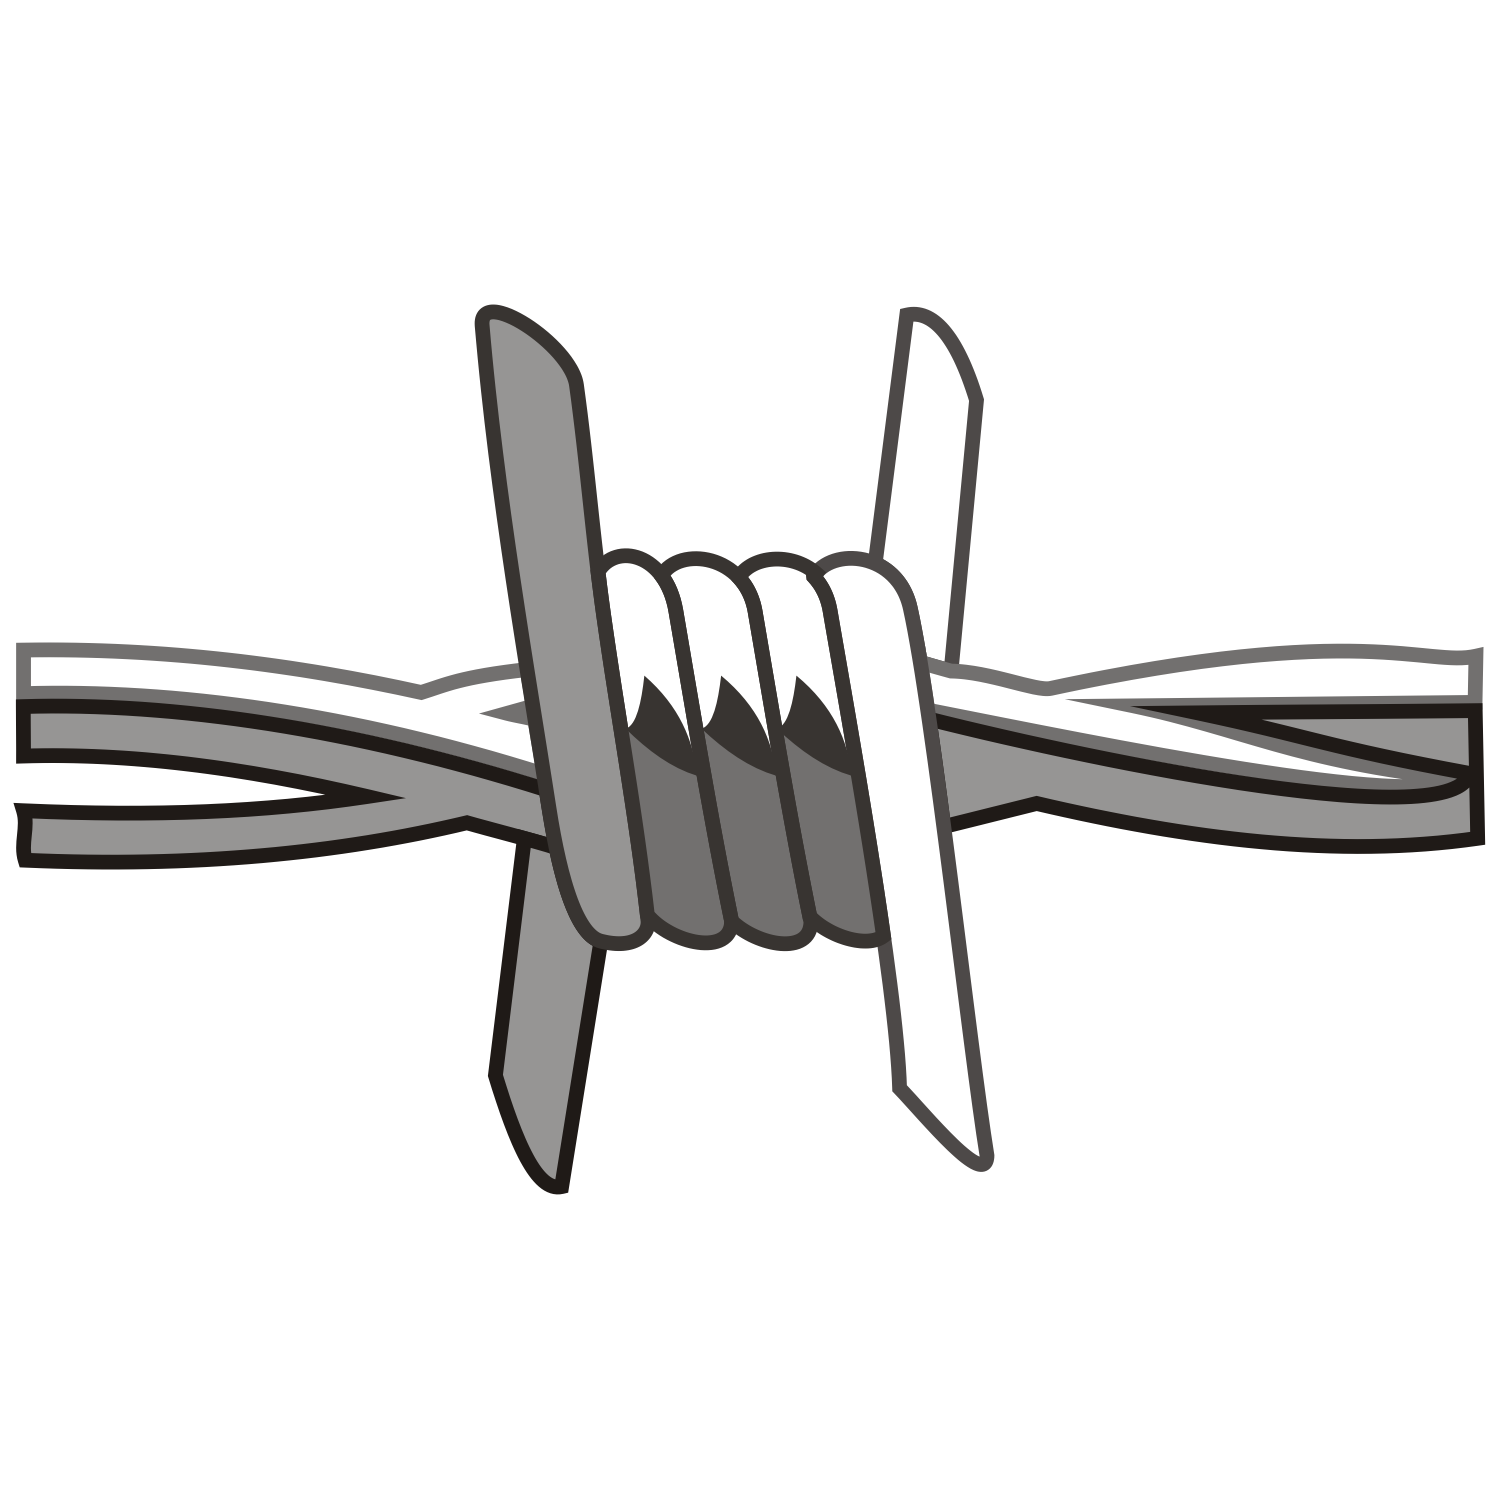 Free Barbed Wire Clip Art   Clipart Best